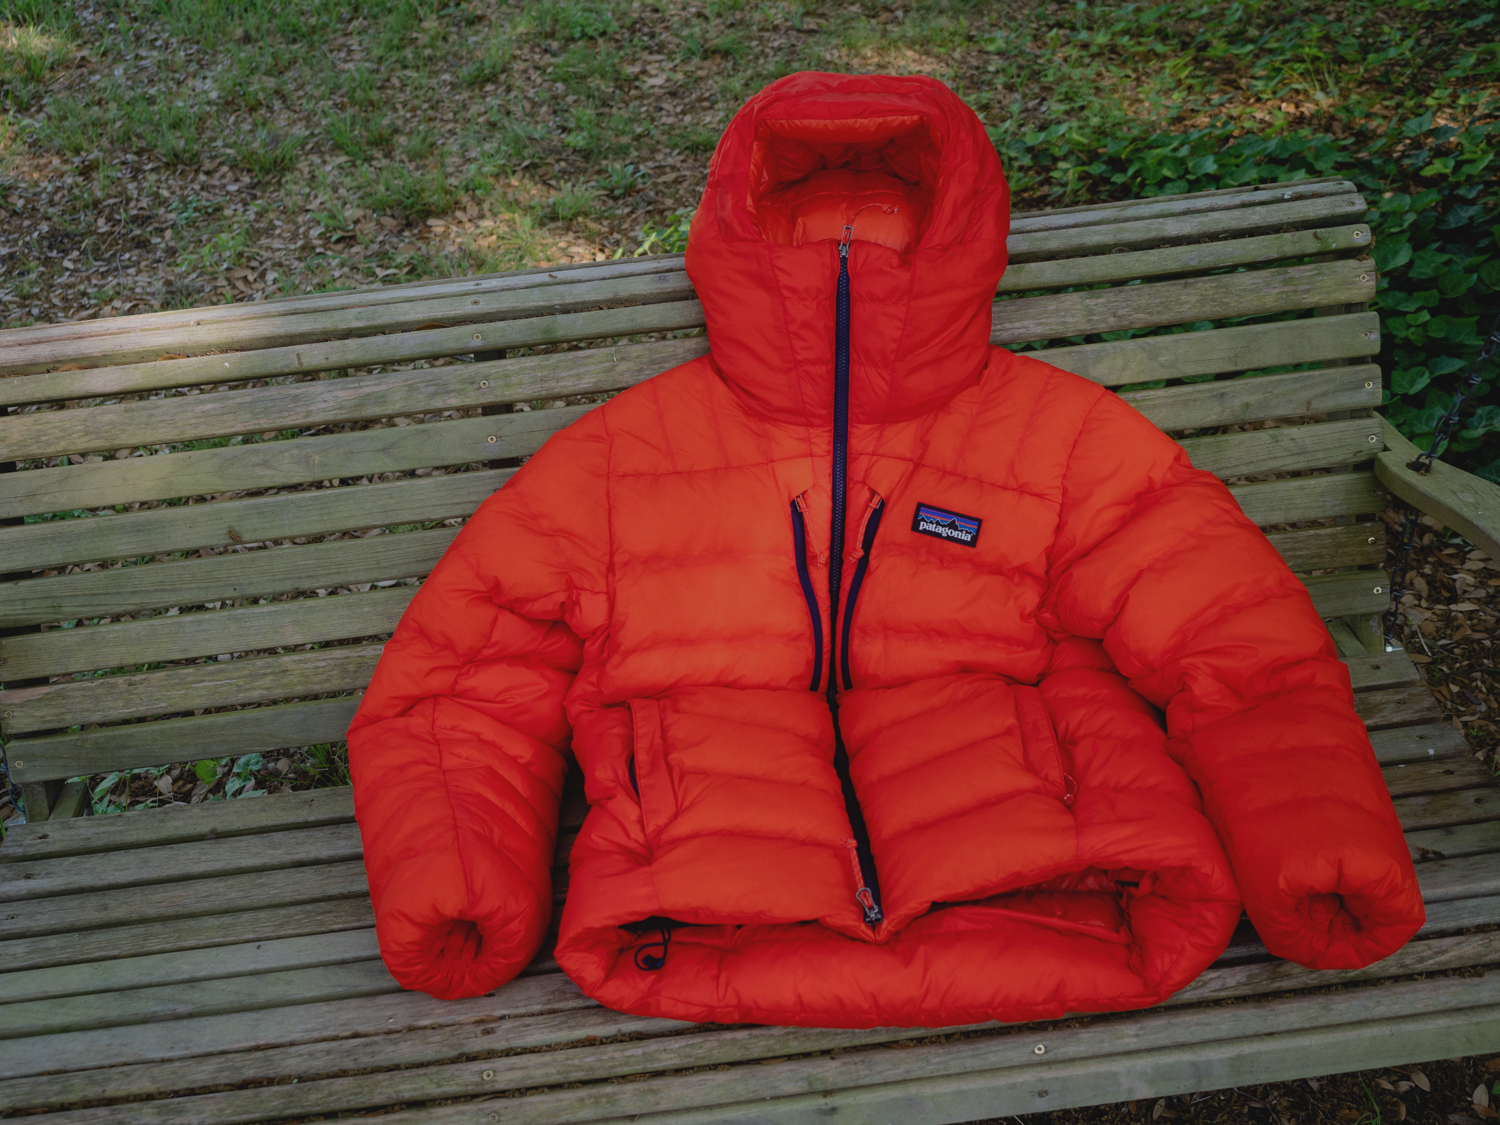 Warmest Jacket Yet Patagonia Grade Vii Down Parka Review